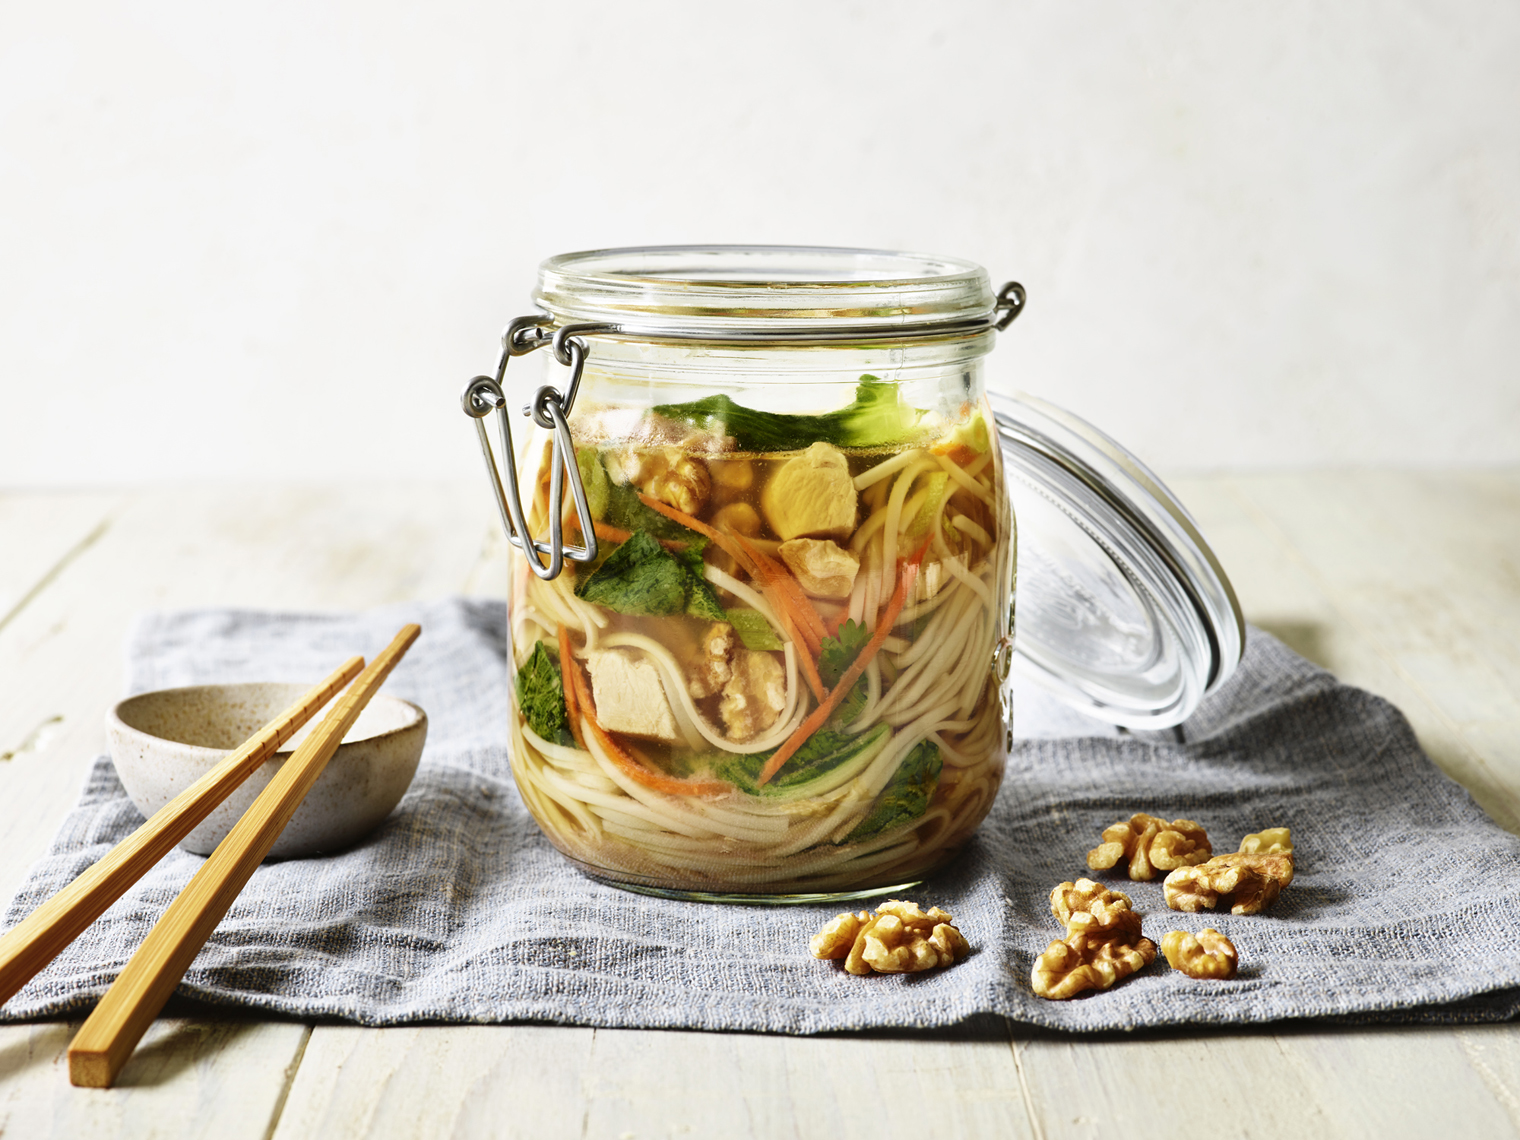 LEIGH_BEISCH_Asian_Walnut_Chicken_Veggie_Noode_Jar_Traditional_22076